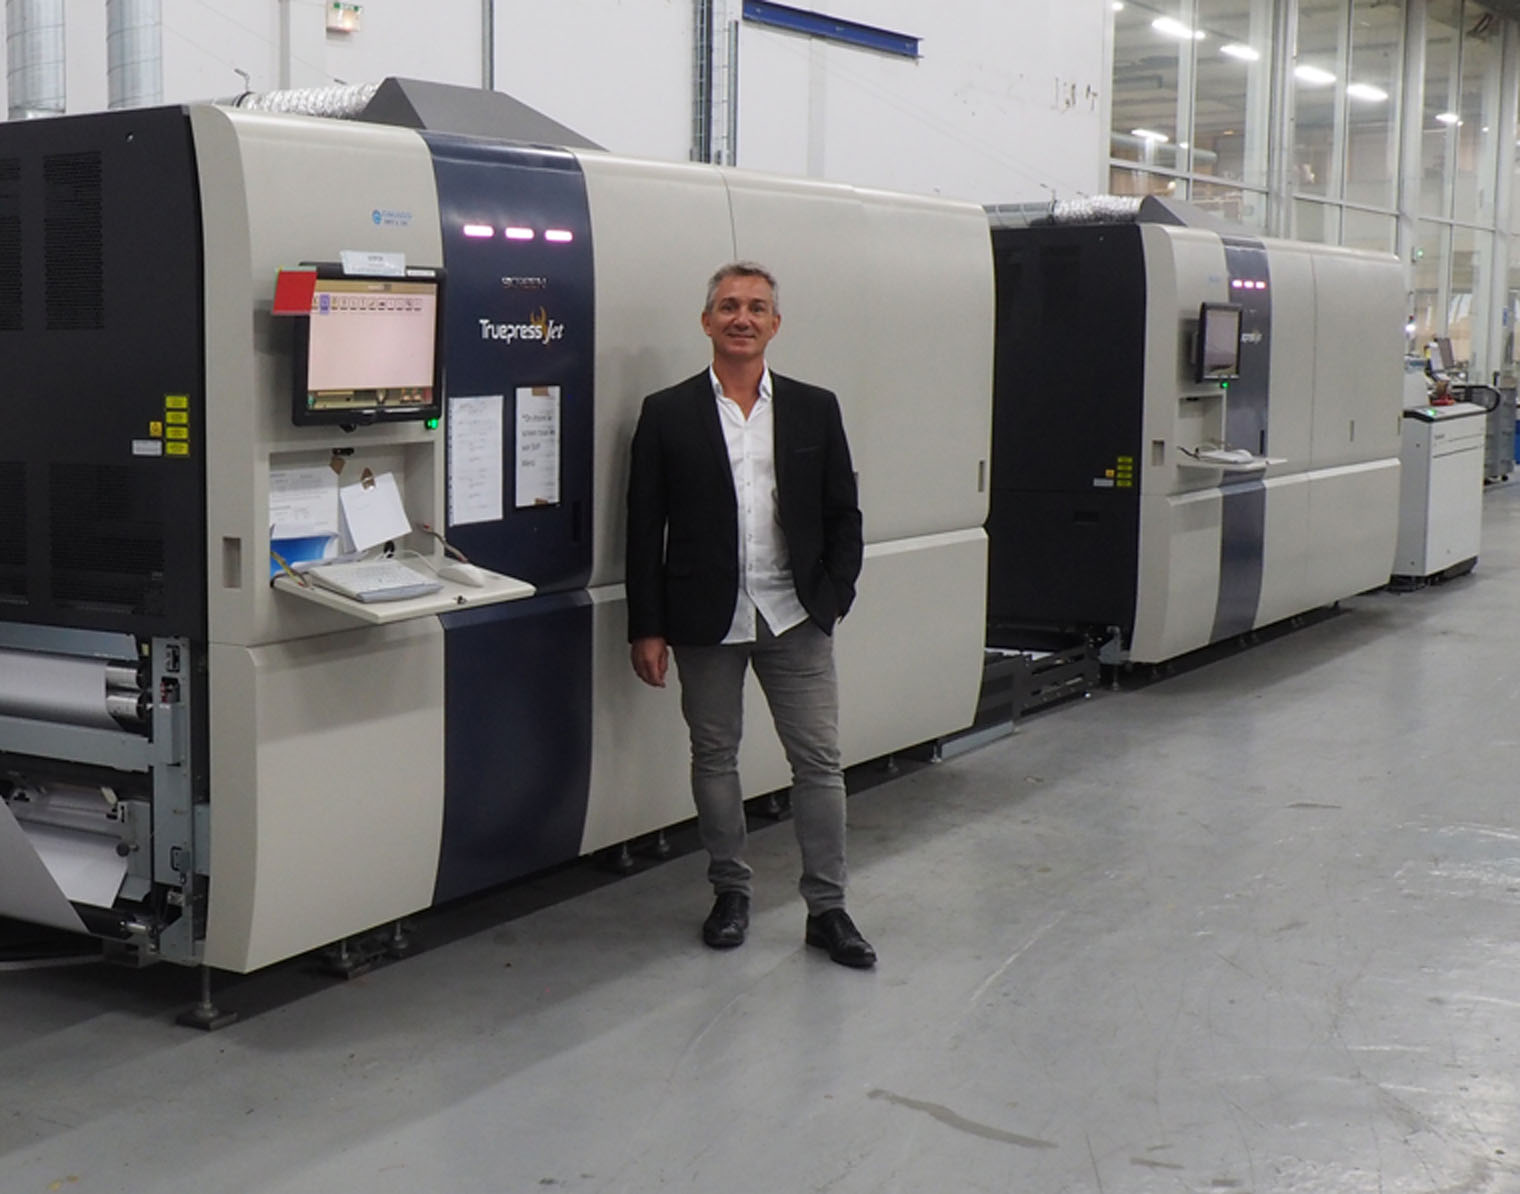 Image from LEADING FRENCH PRINTER TAGG INFORMATIQUE CITES TEN PERCENT TURNOVER INCREASE TO ITS DIRECT MARKETING ACTIVITIES SINCE INVESTING IN SCREEN TRUEPRESS JET520HD